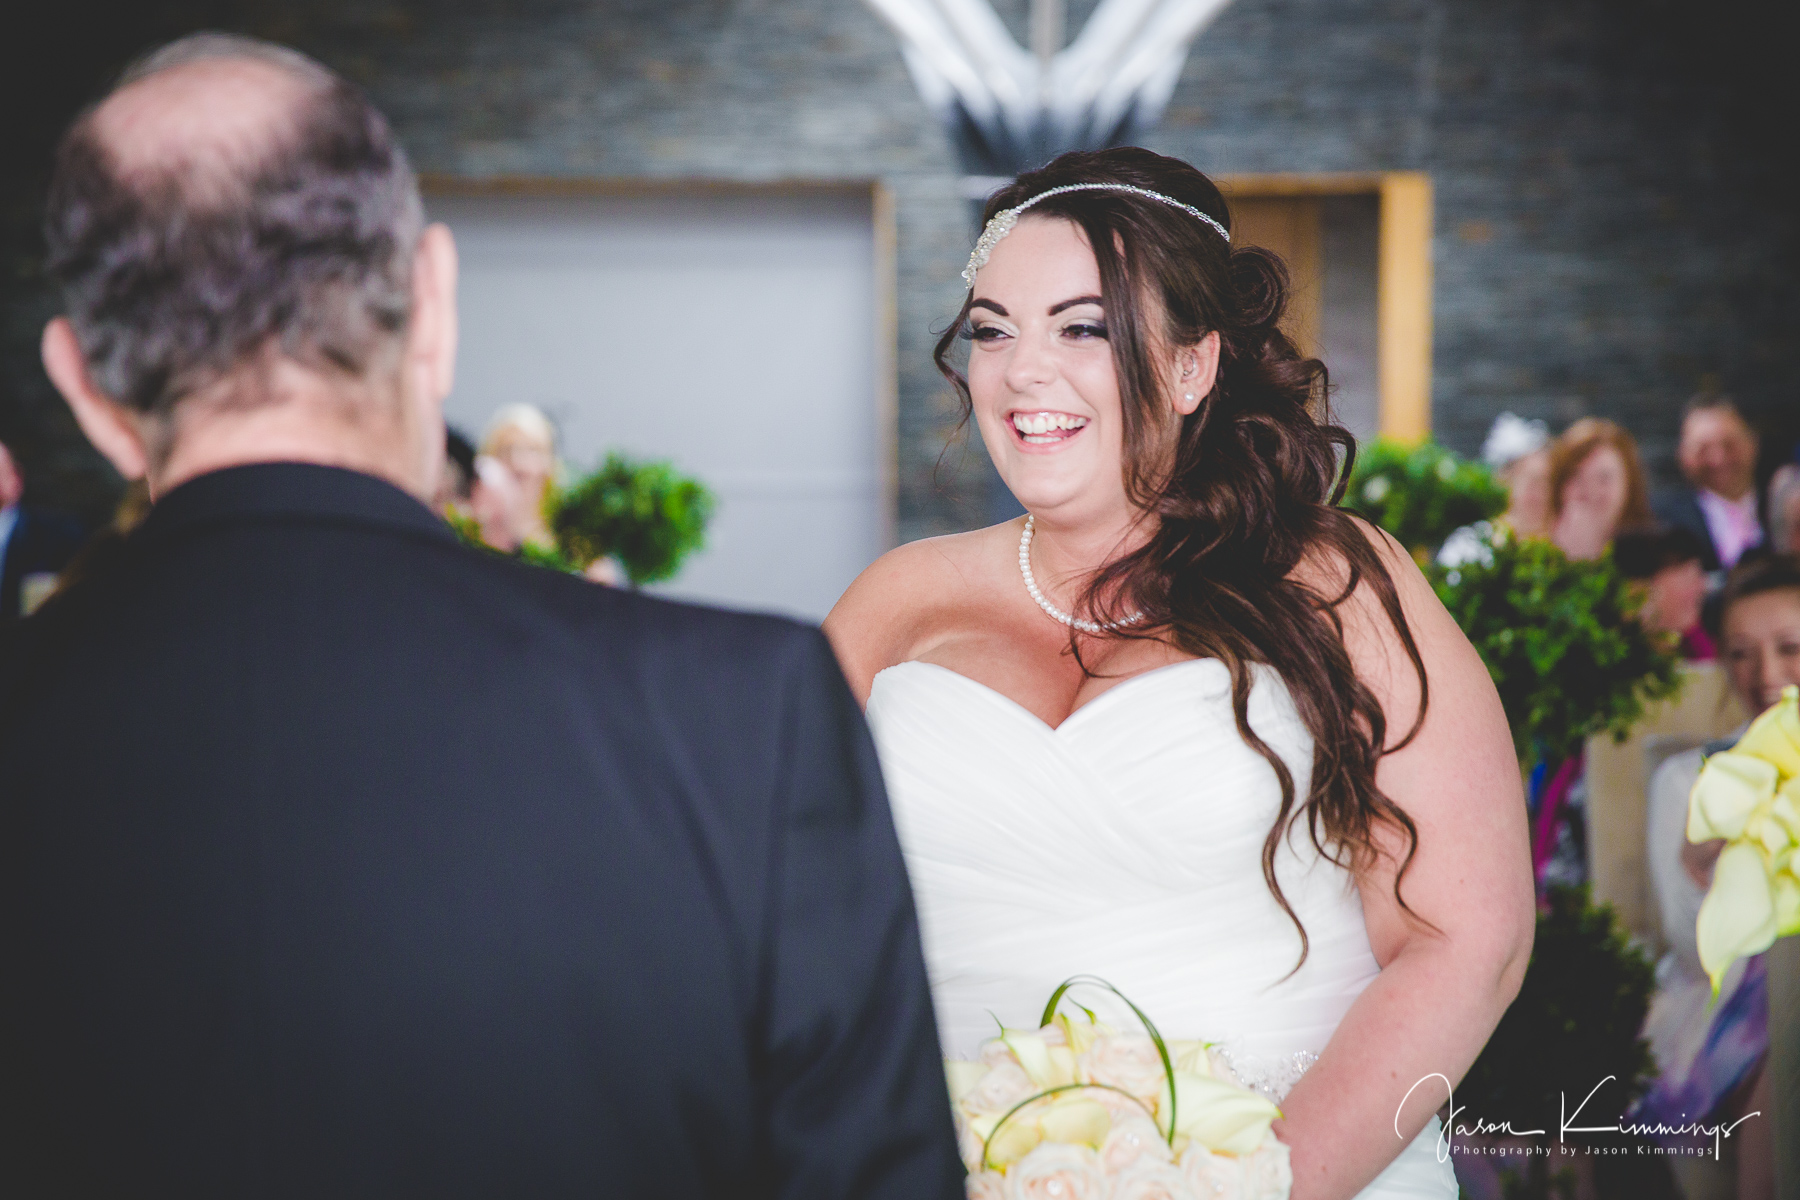 vu-wedding-photography-bathgate-13.jpg